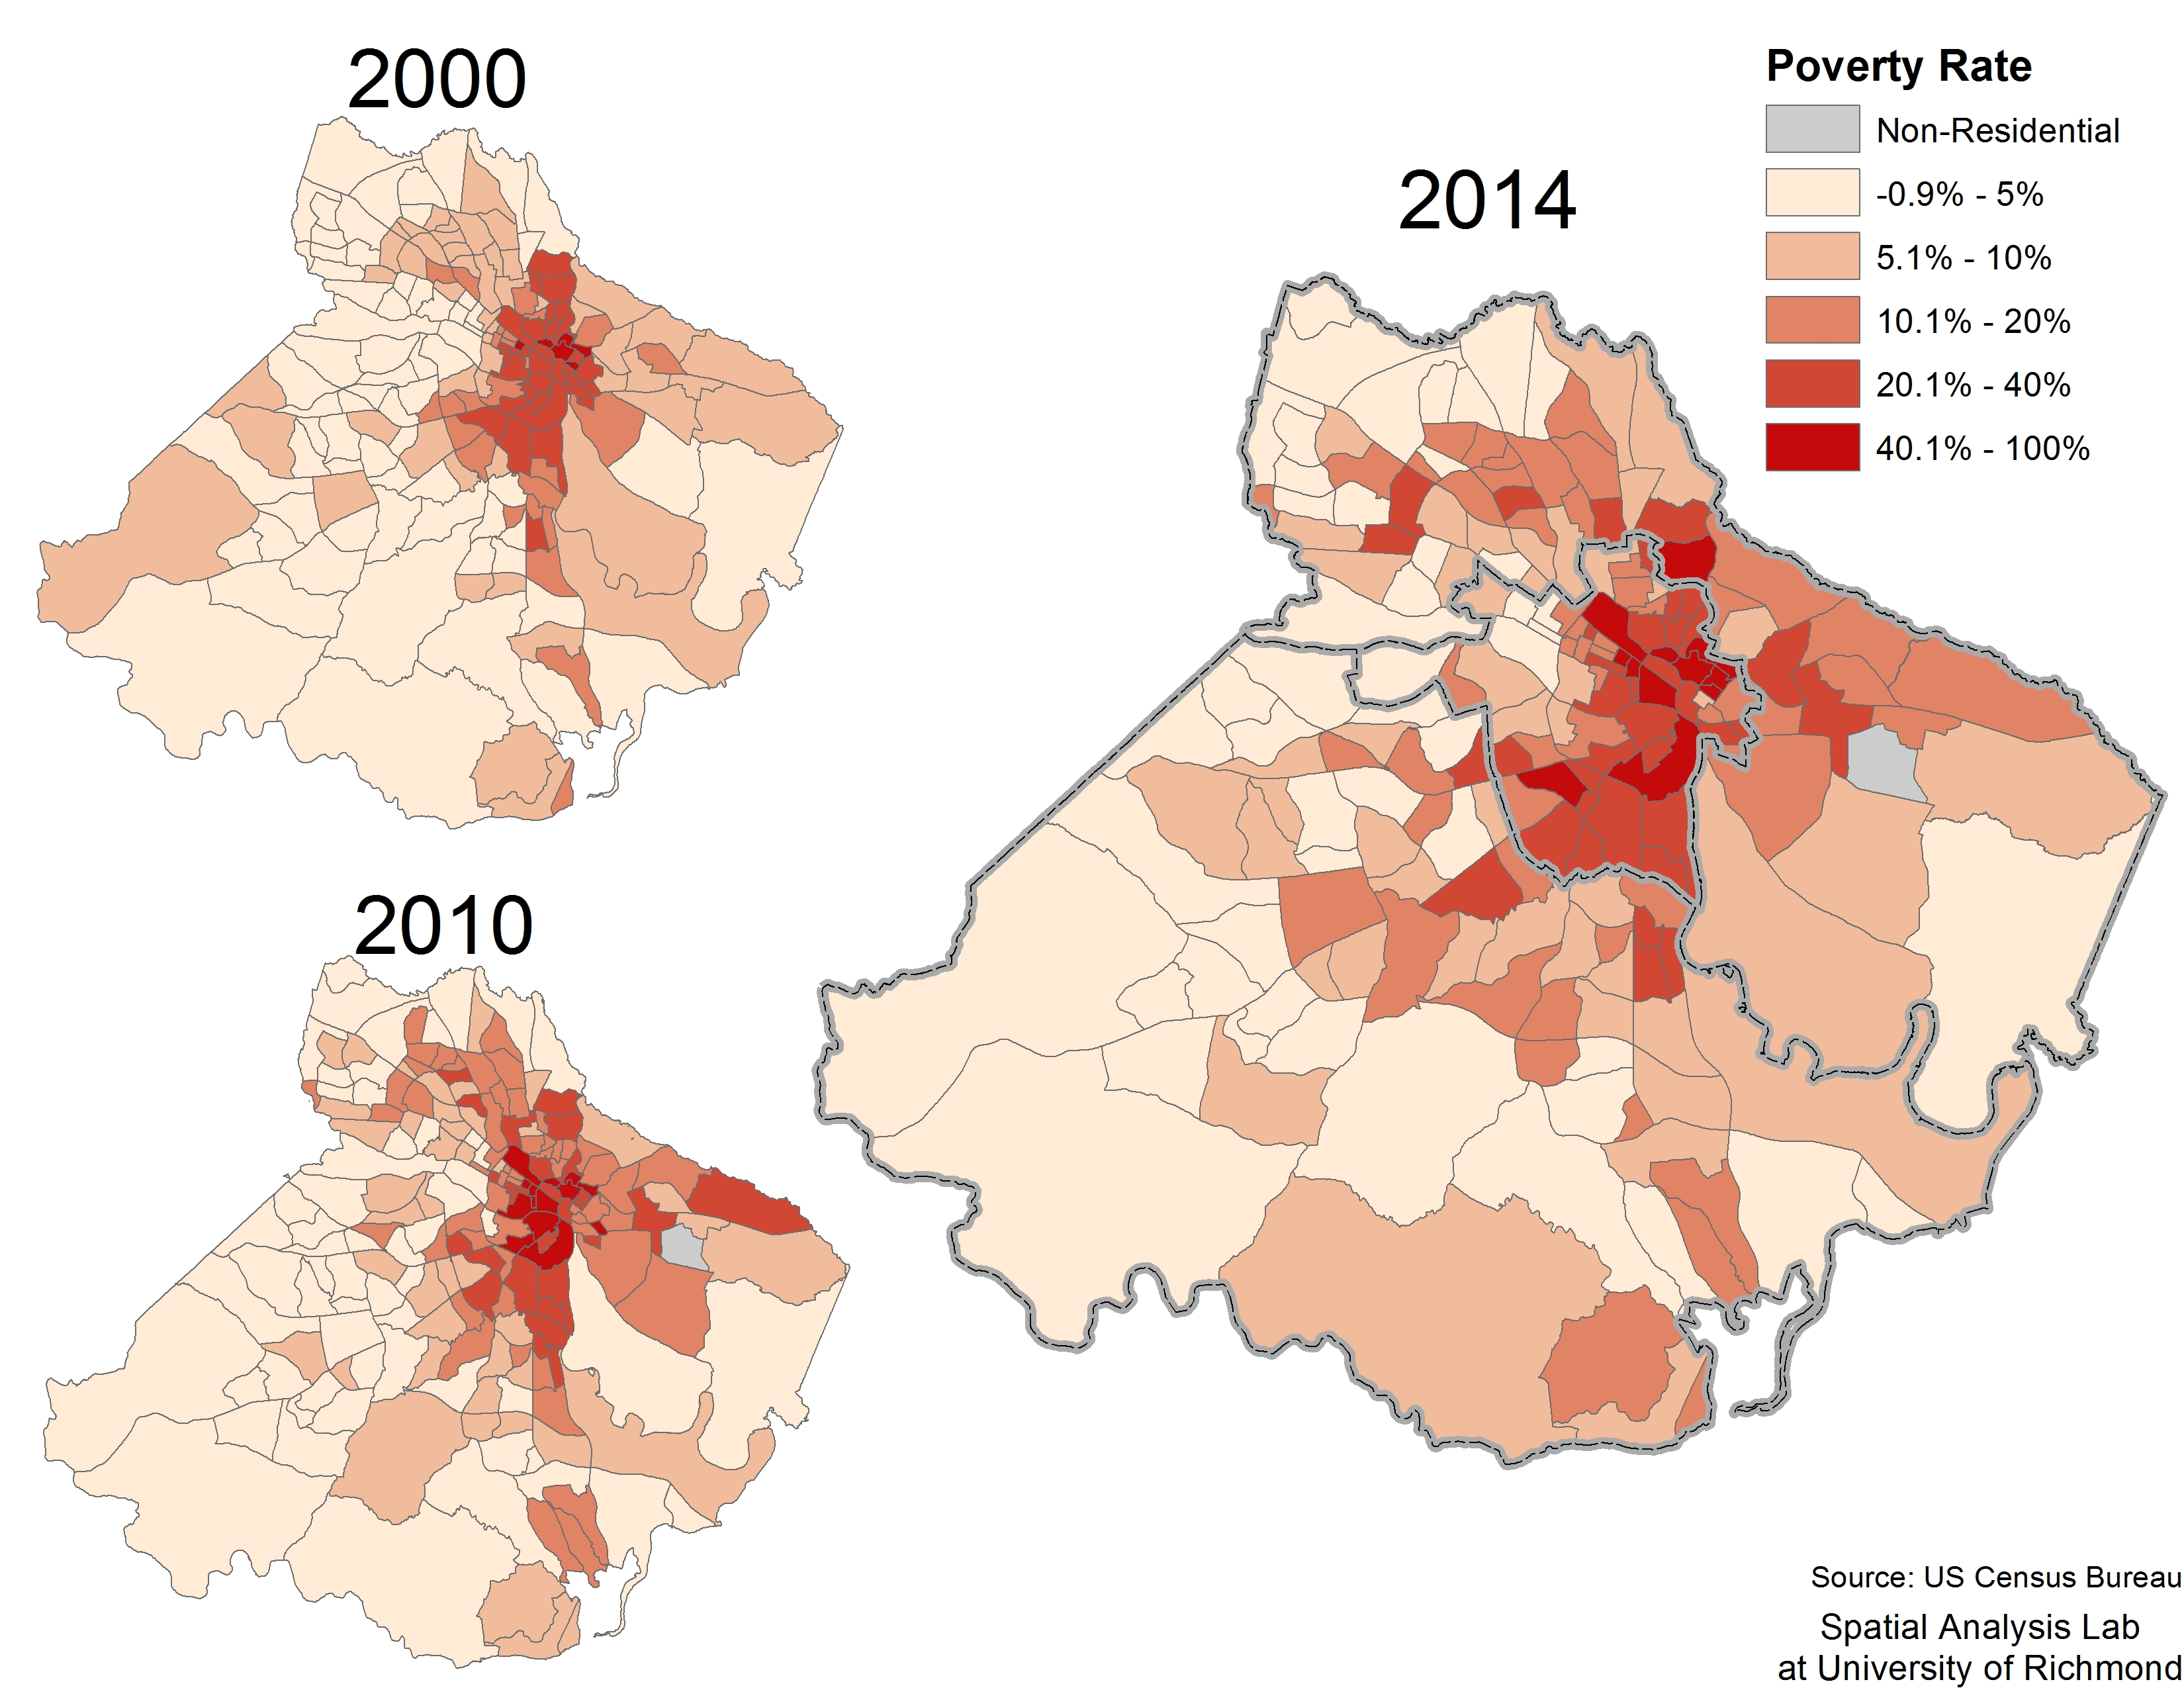 Poverty in Richmond, Chesterfield, and Henrico 2000-2014